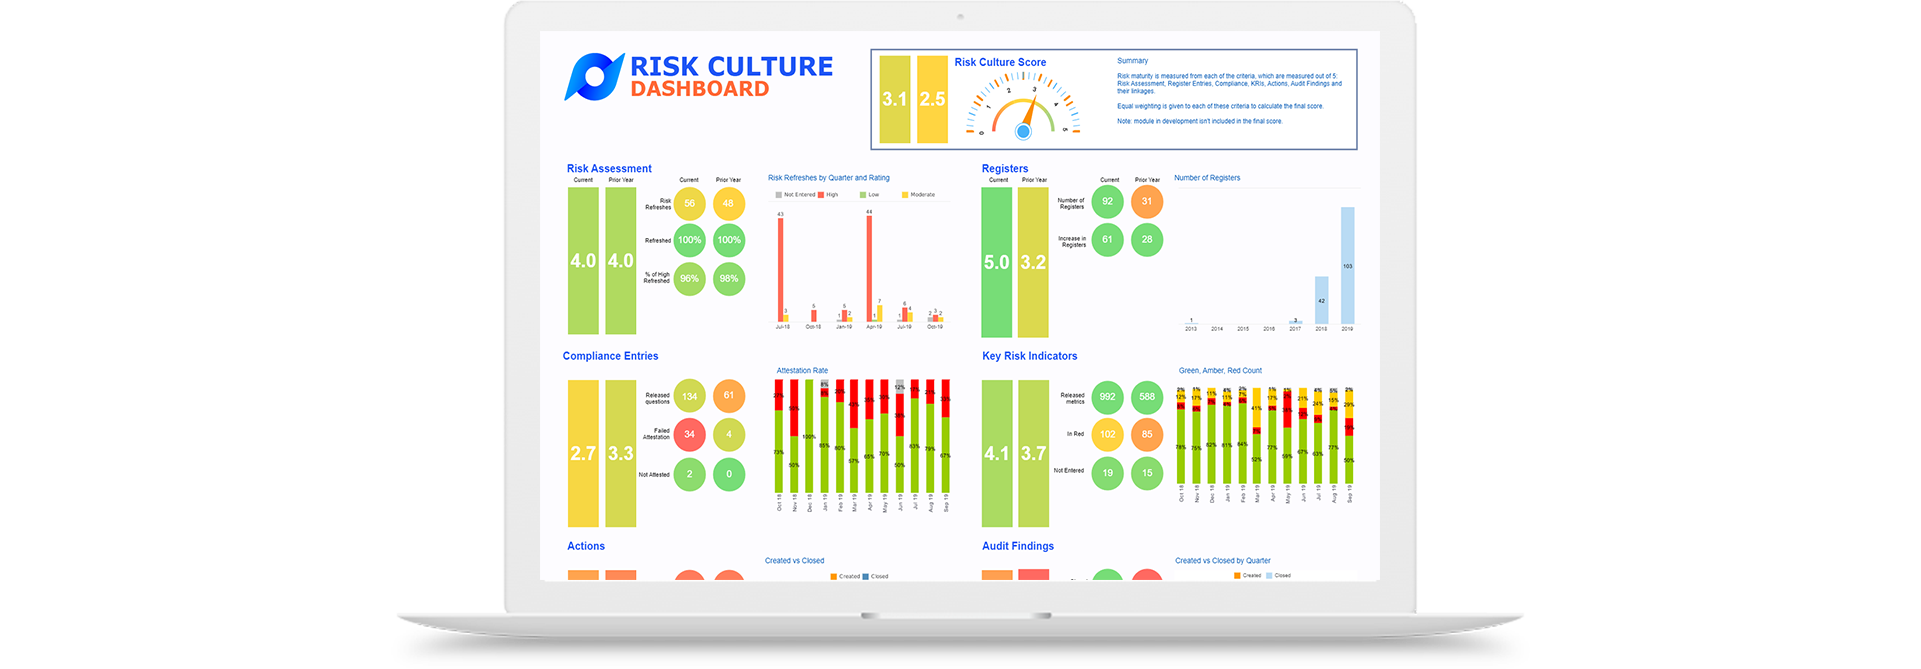 Risk Culture Dashboard in Protecht.ERM